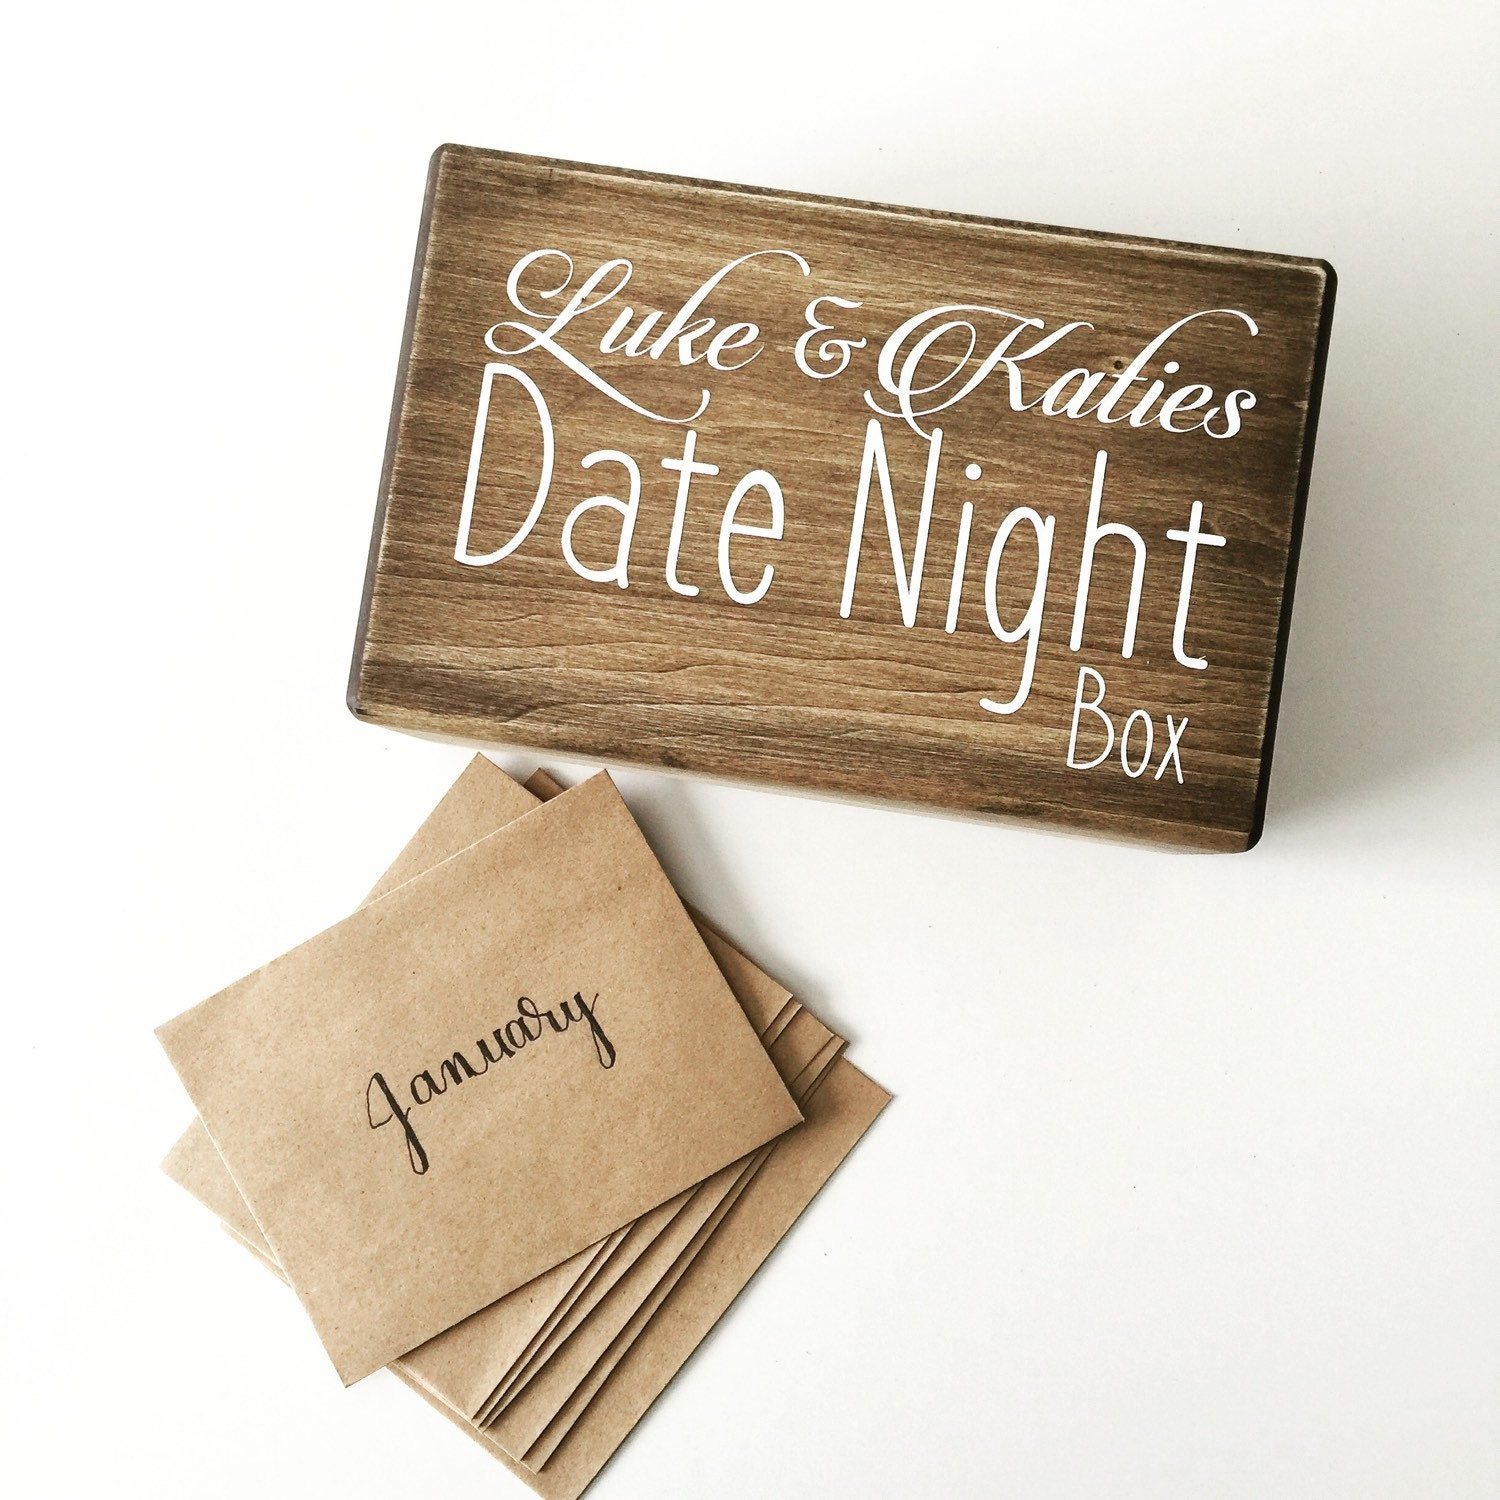 Date Night Box date night fund couples ideas keepsake box